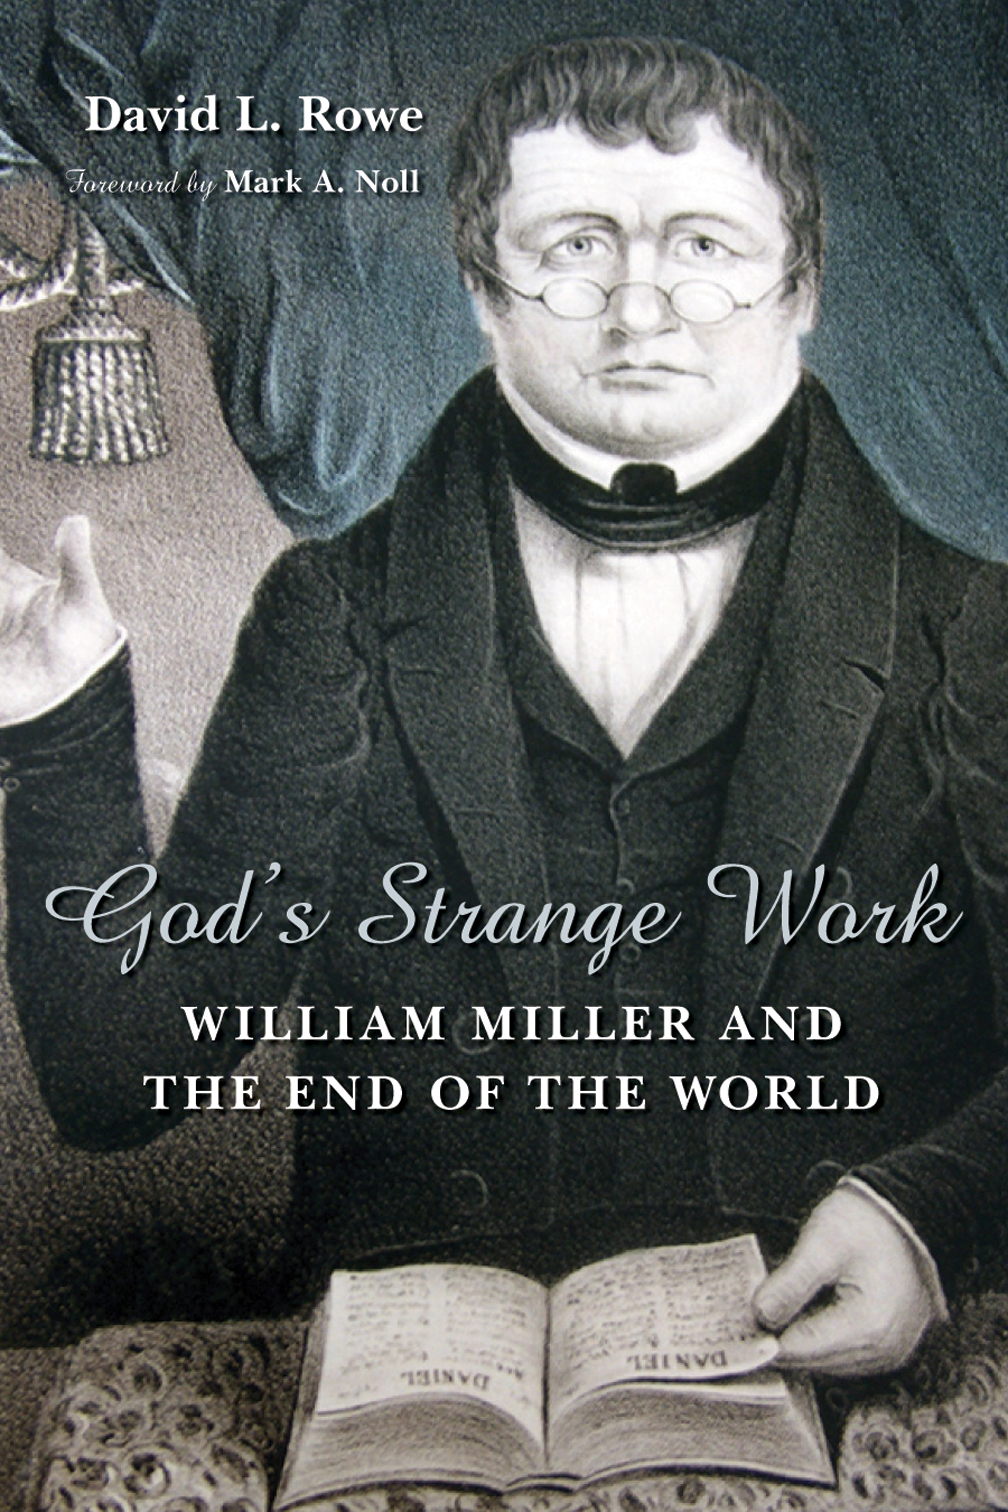 God's Strange Work: William Miller and the End of the World